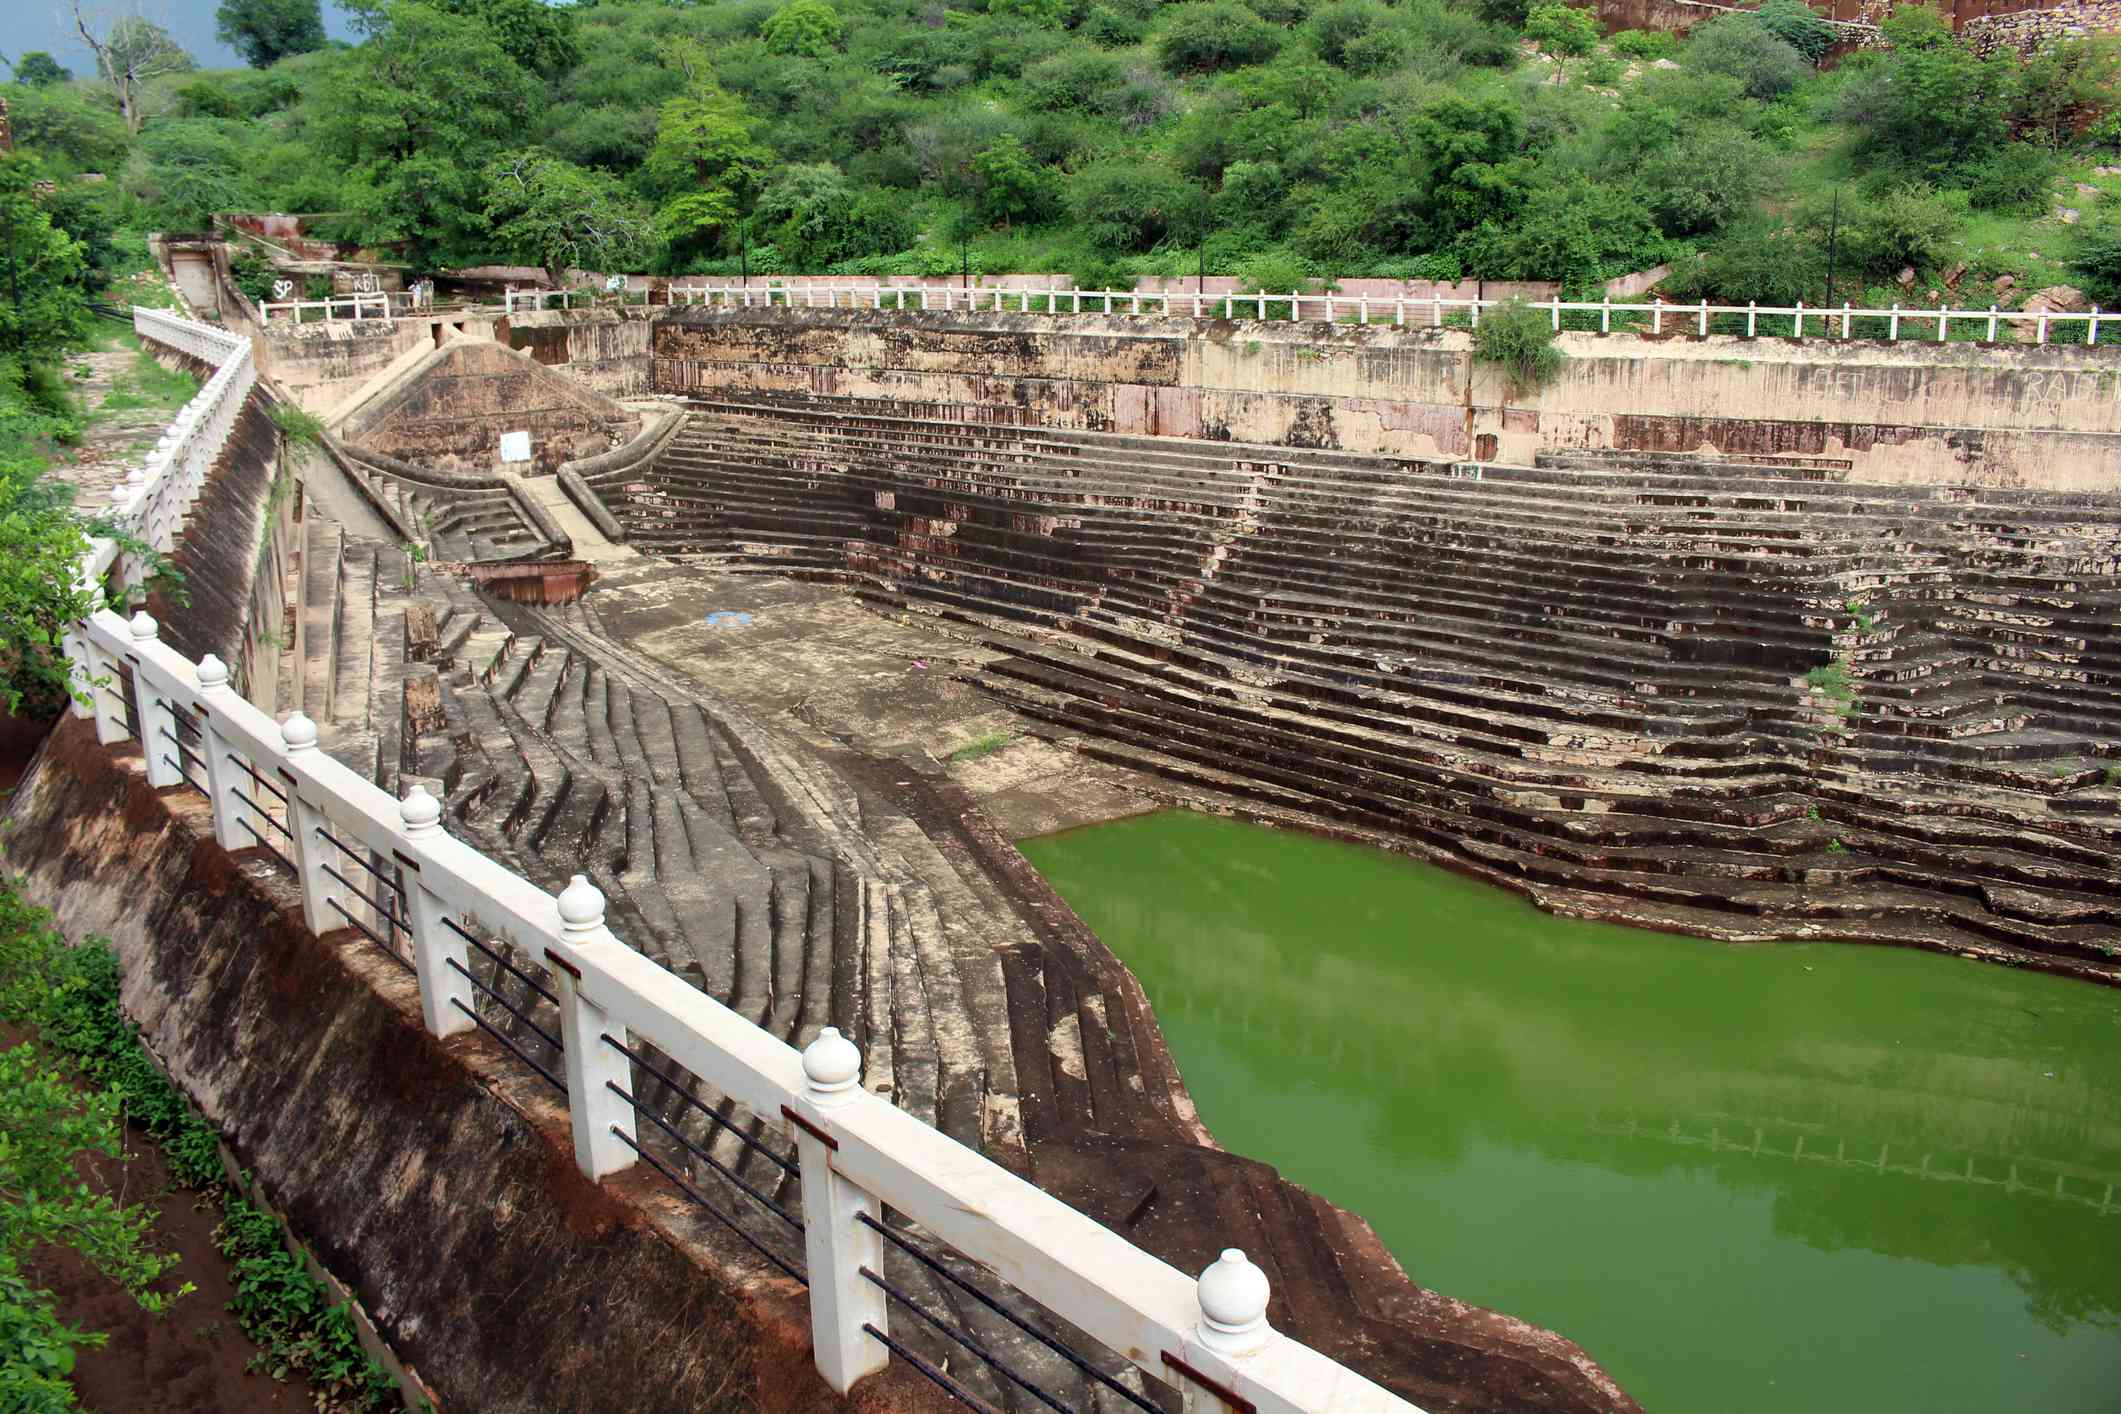 The unique architecture of a stepwell around Nahargarh Fort.